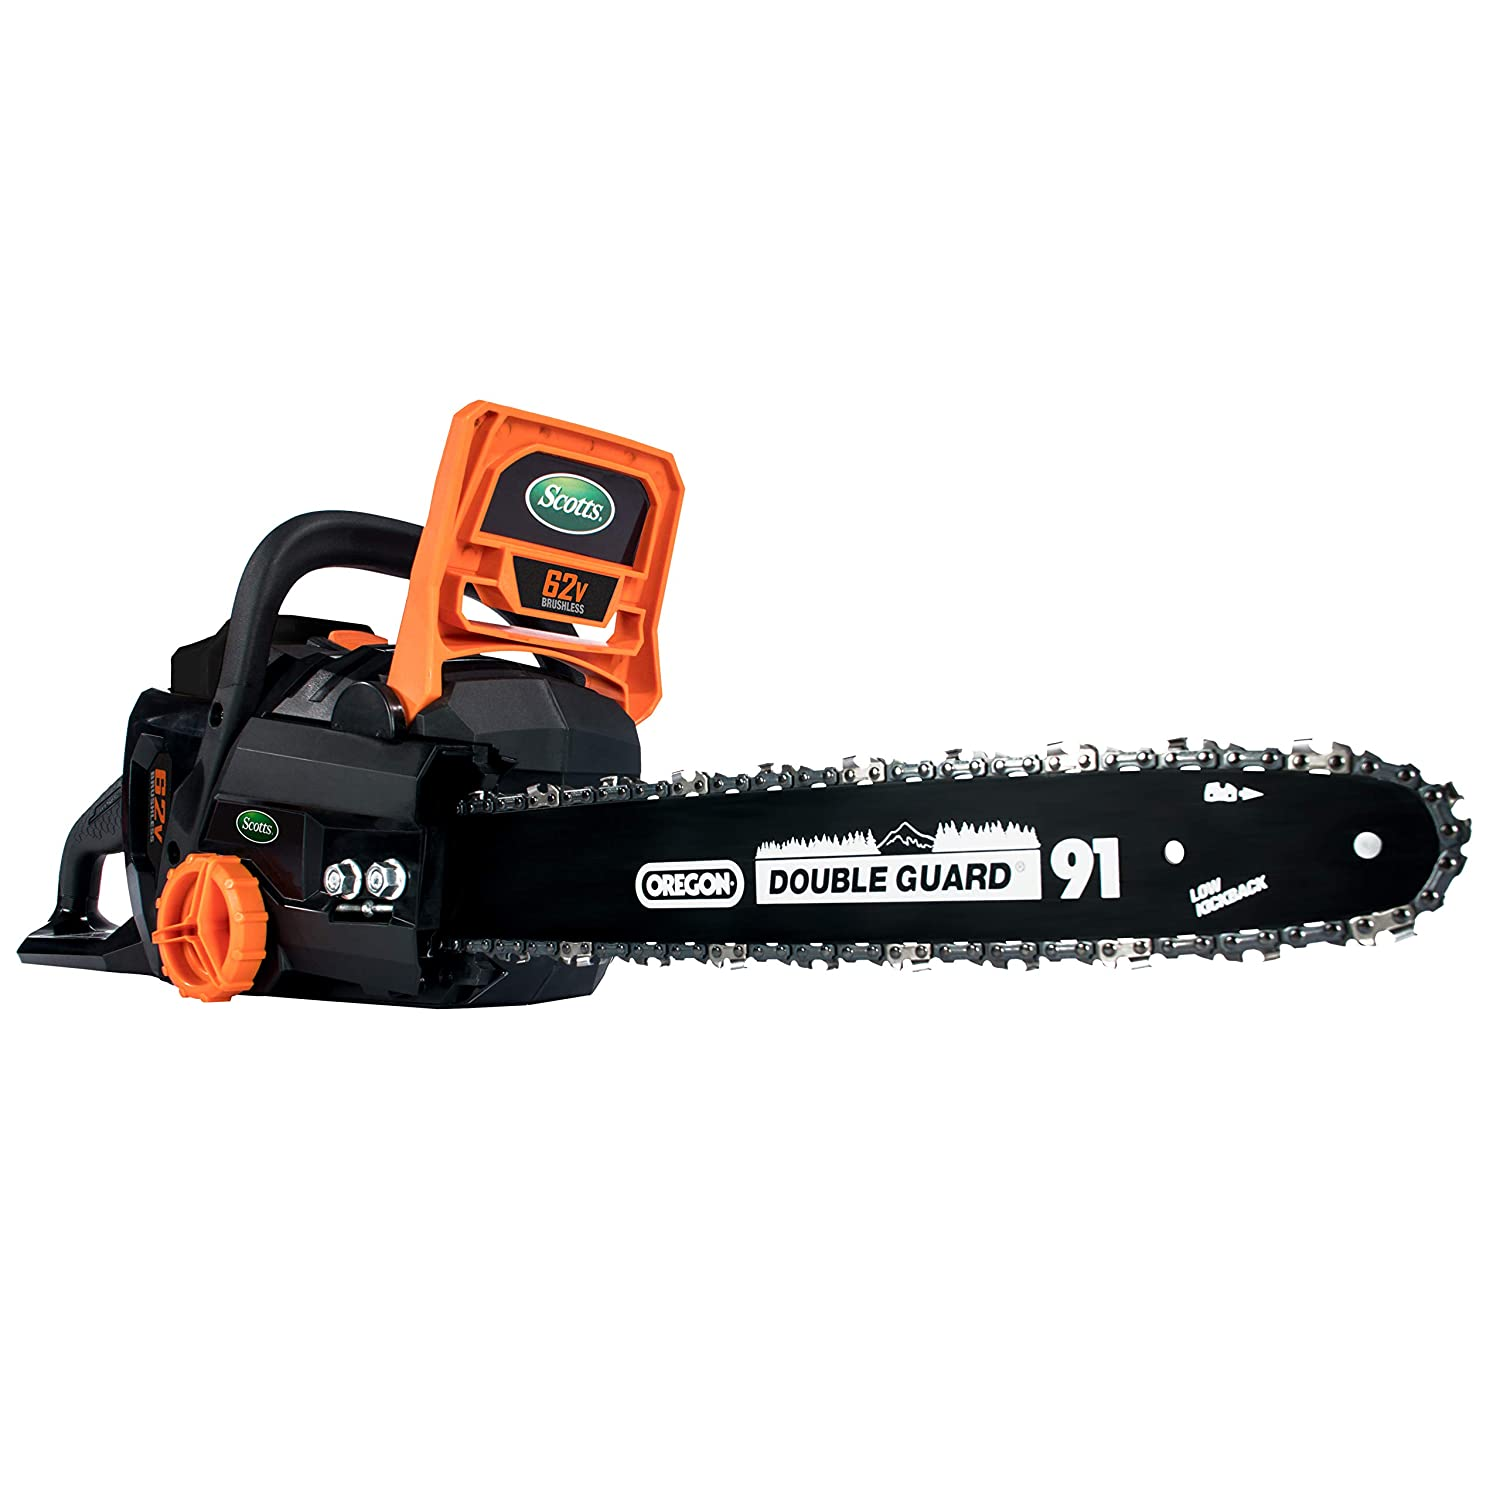 Scotts Outdoor Power Tools LCS31662S Chainsaws product image 1